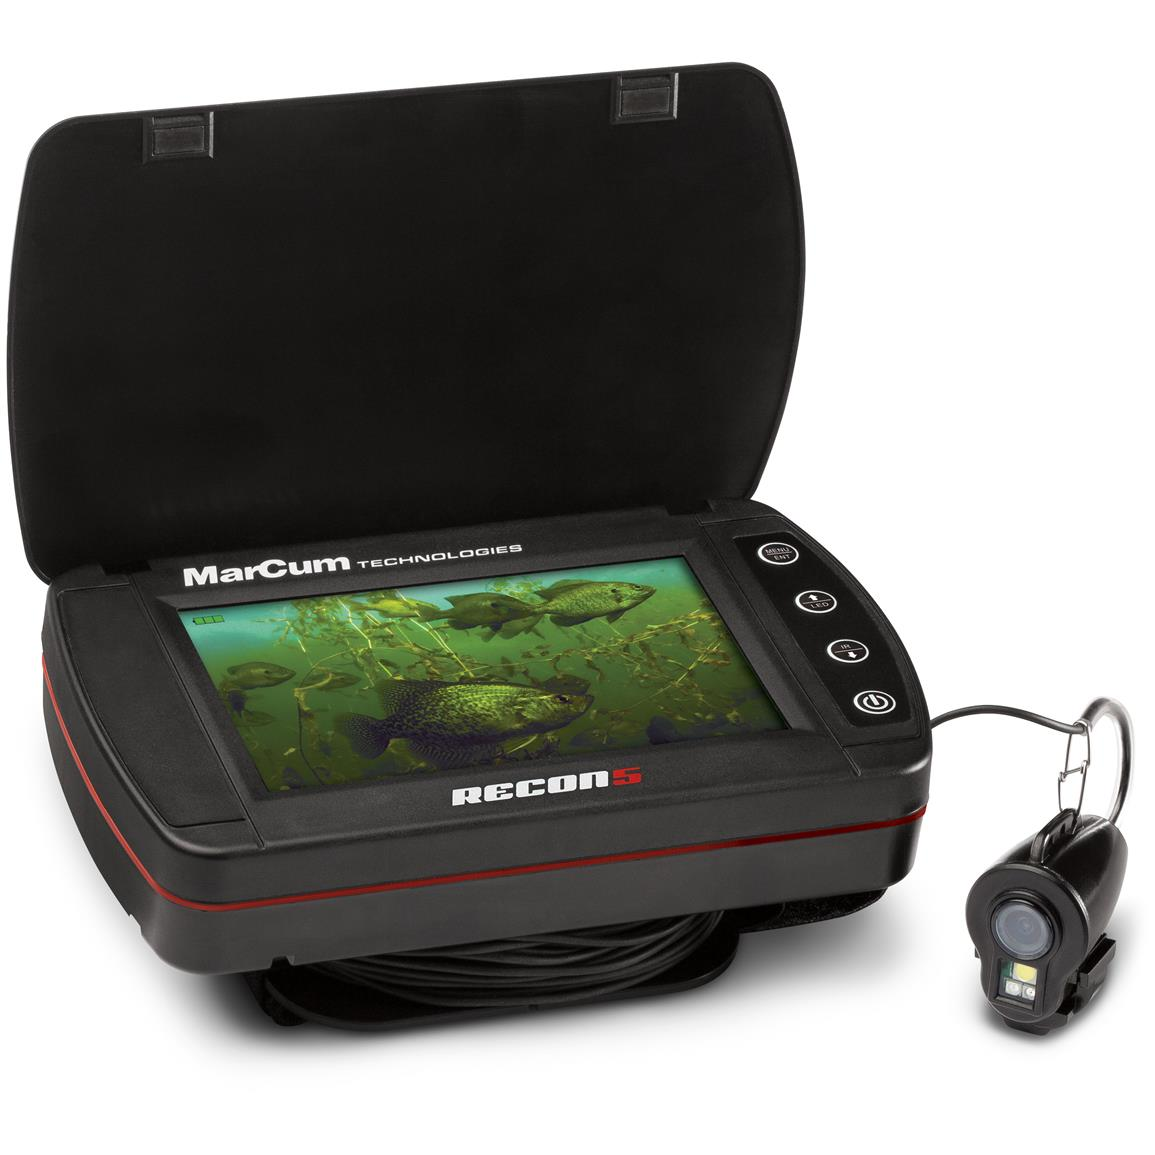 Marcum recon 5 underwater viewing system 670381 ice for Ice fishing electronics